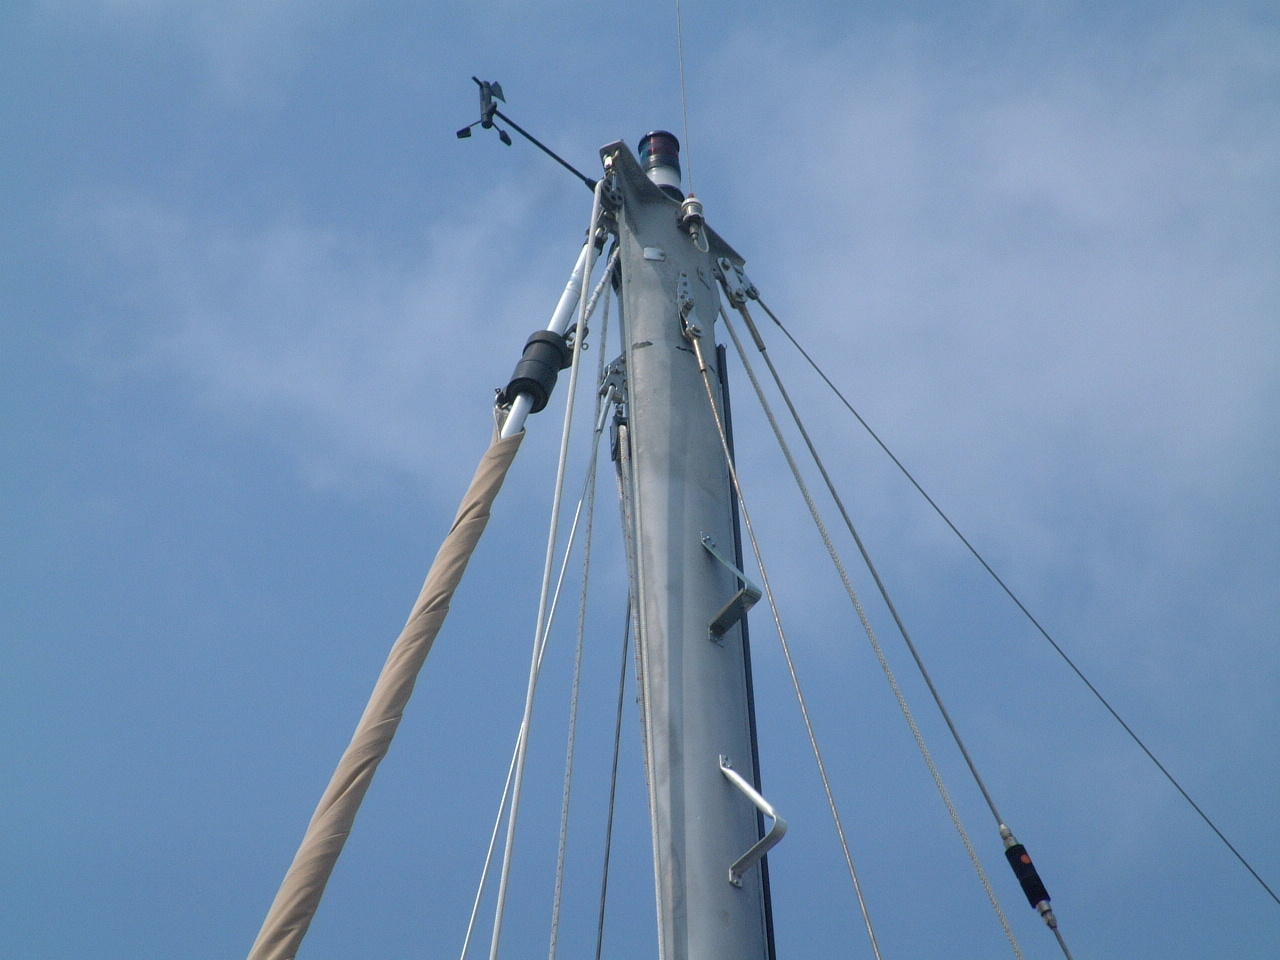 Halyard wrap, diagnosis, prevention and repair.